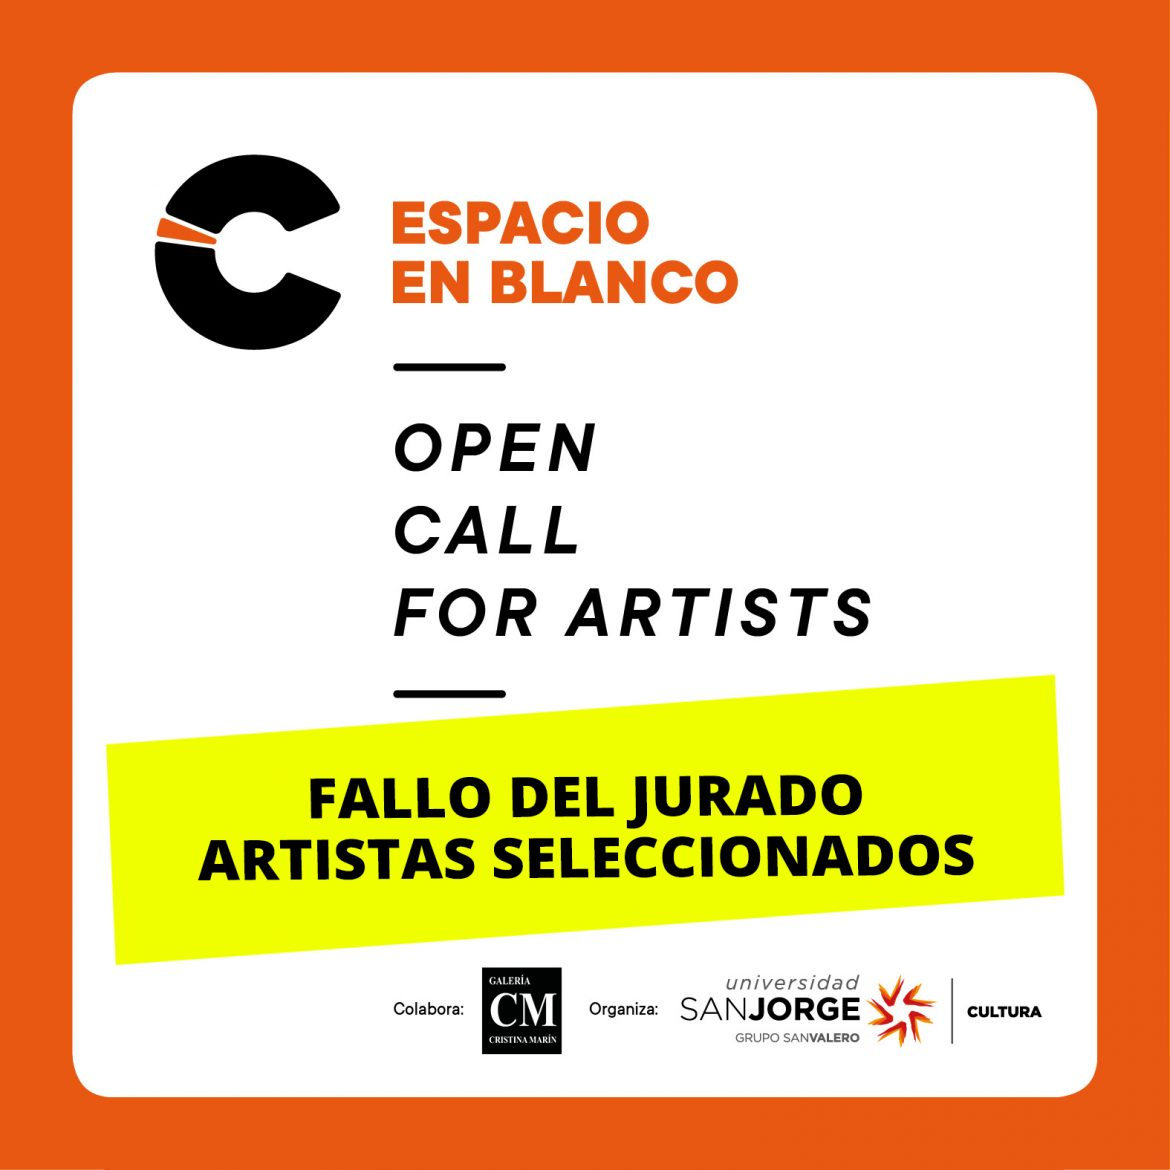 Fallo del jurado Open call for artists Espacio en blanco